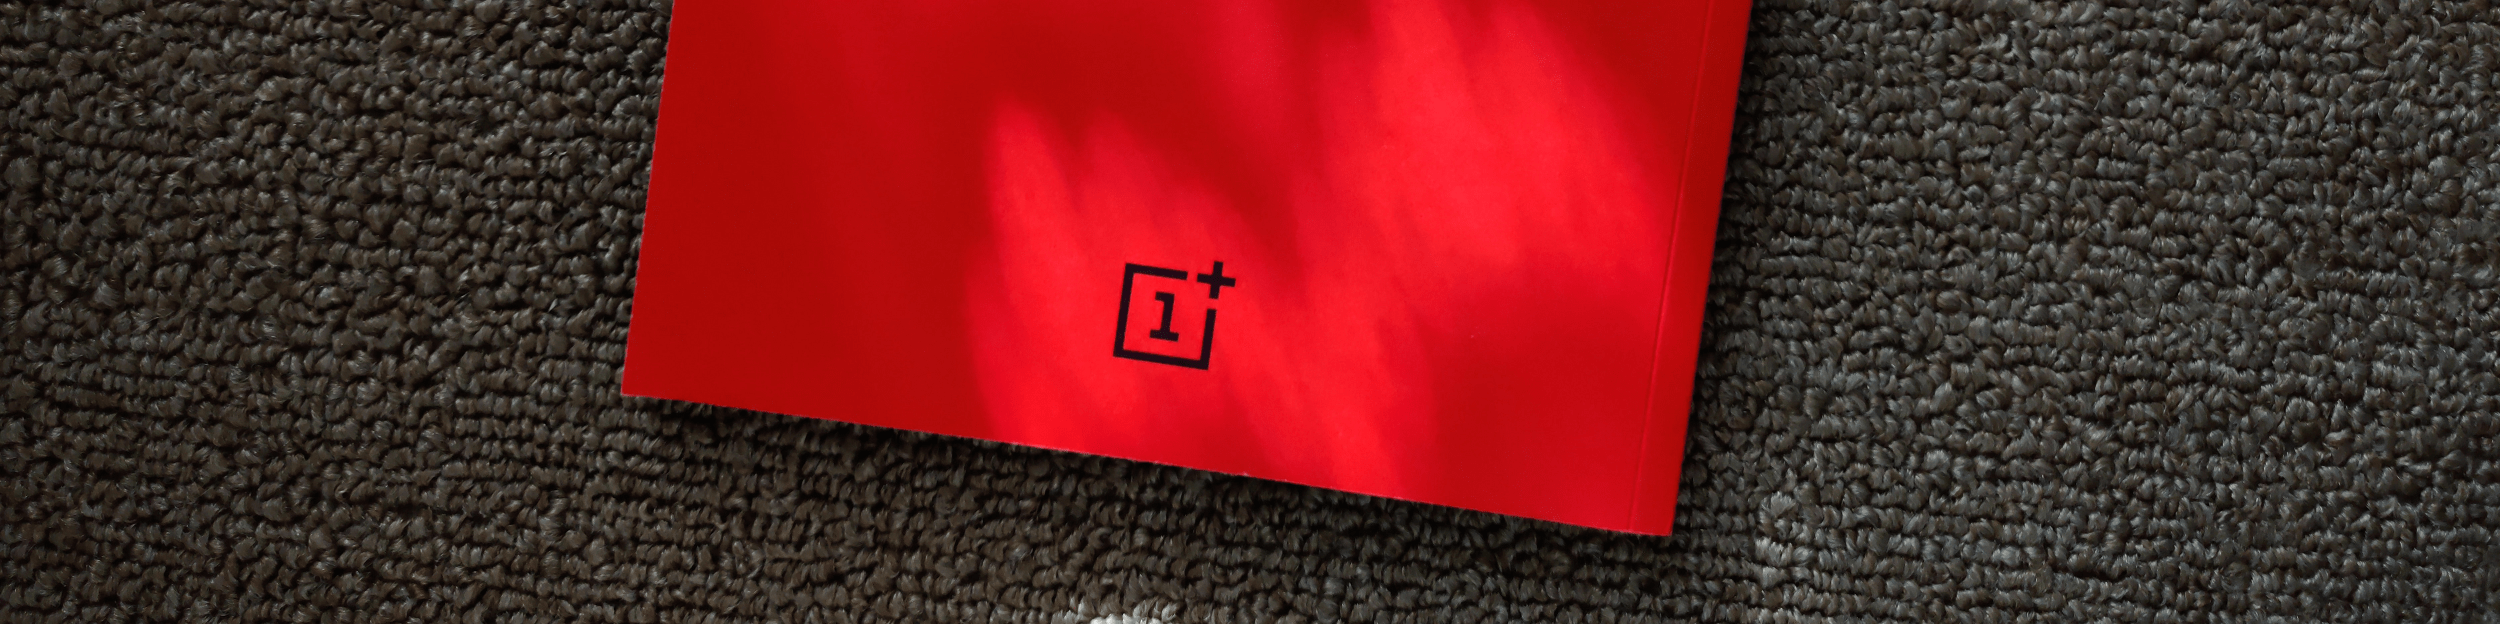 Everything you need to know about OxygenOS 11 - 4lolipop